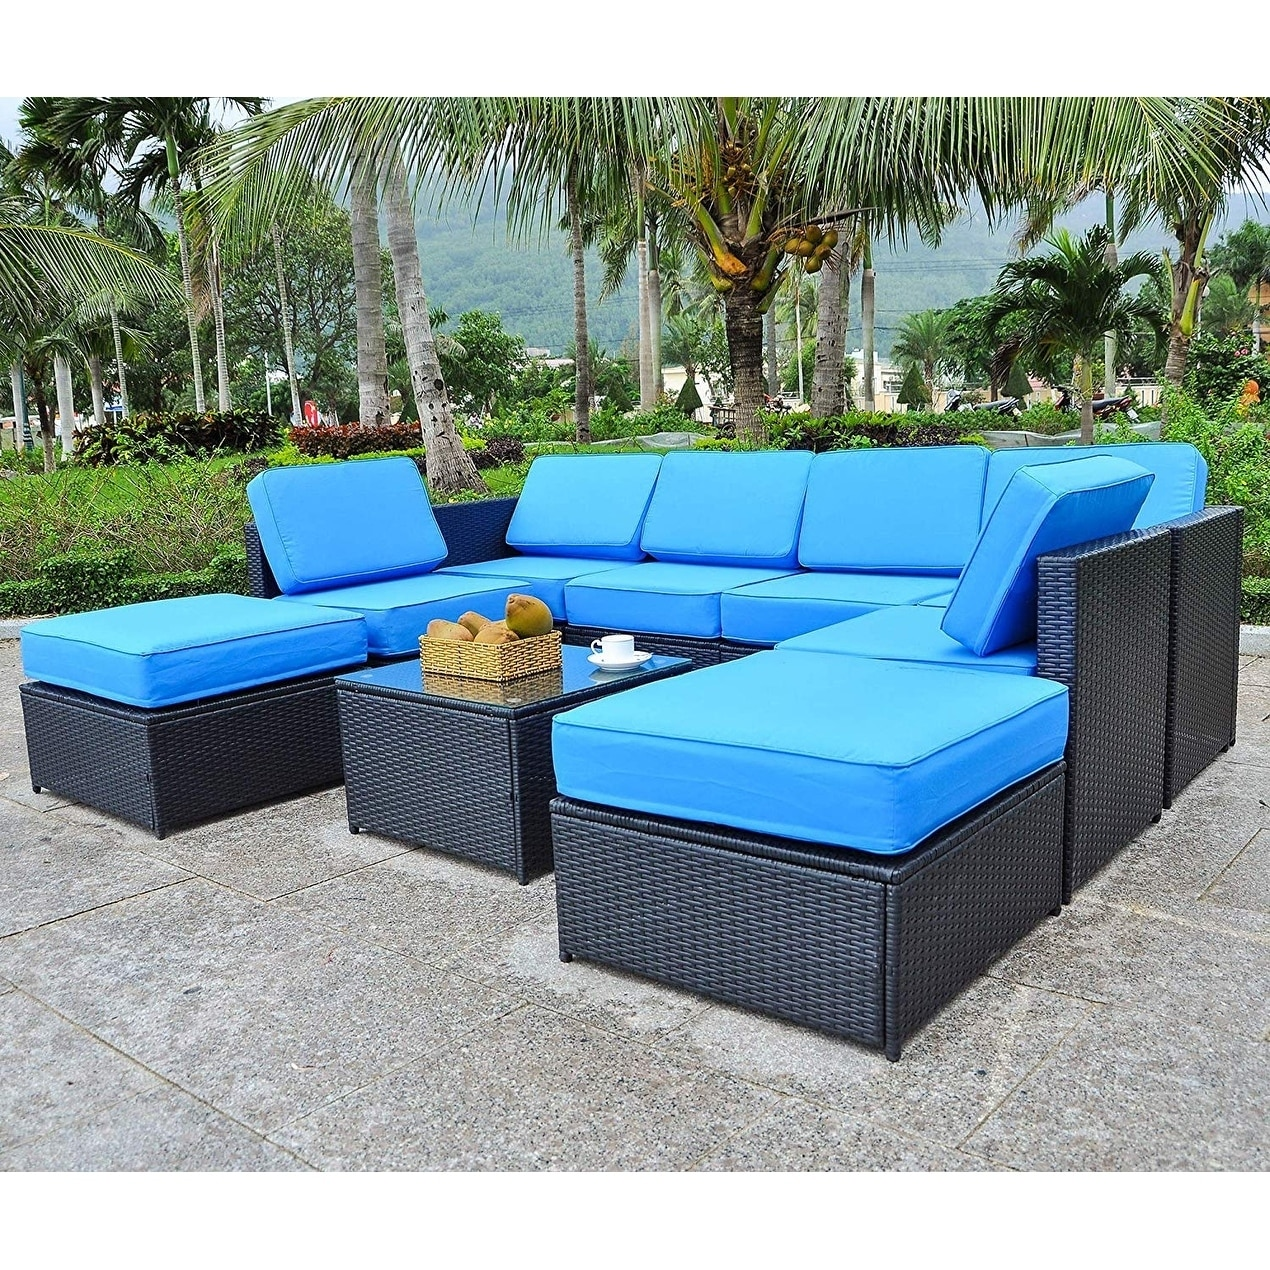 Mcombo Outdoor Patio Black Wicker Furniture Sectional Set All Weather Resin Rattan Chair Modular Sofas With Water Resistant Cushion Covers 6085 Middle Chair Gray Patio Seating Sofas